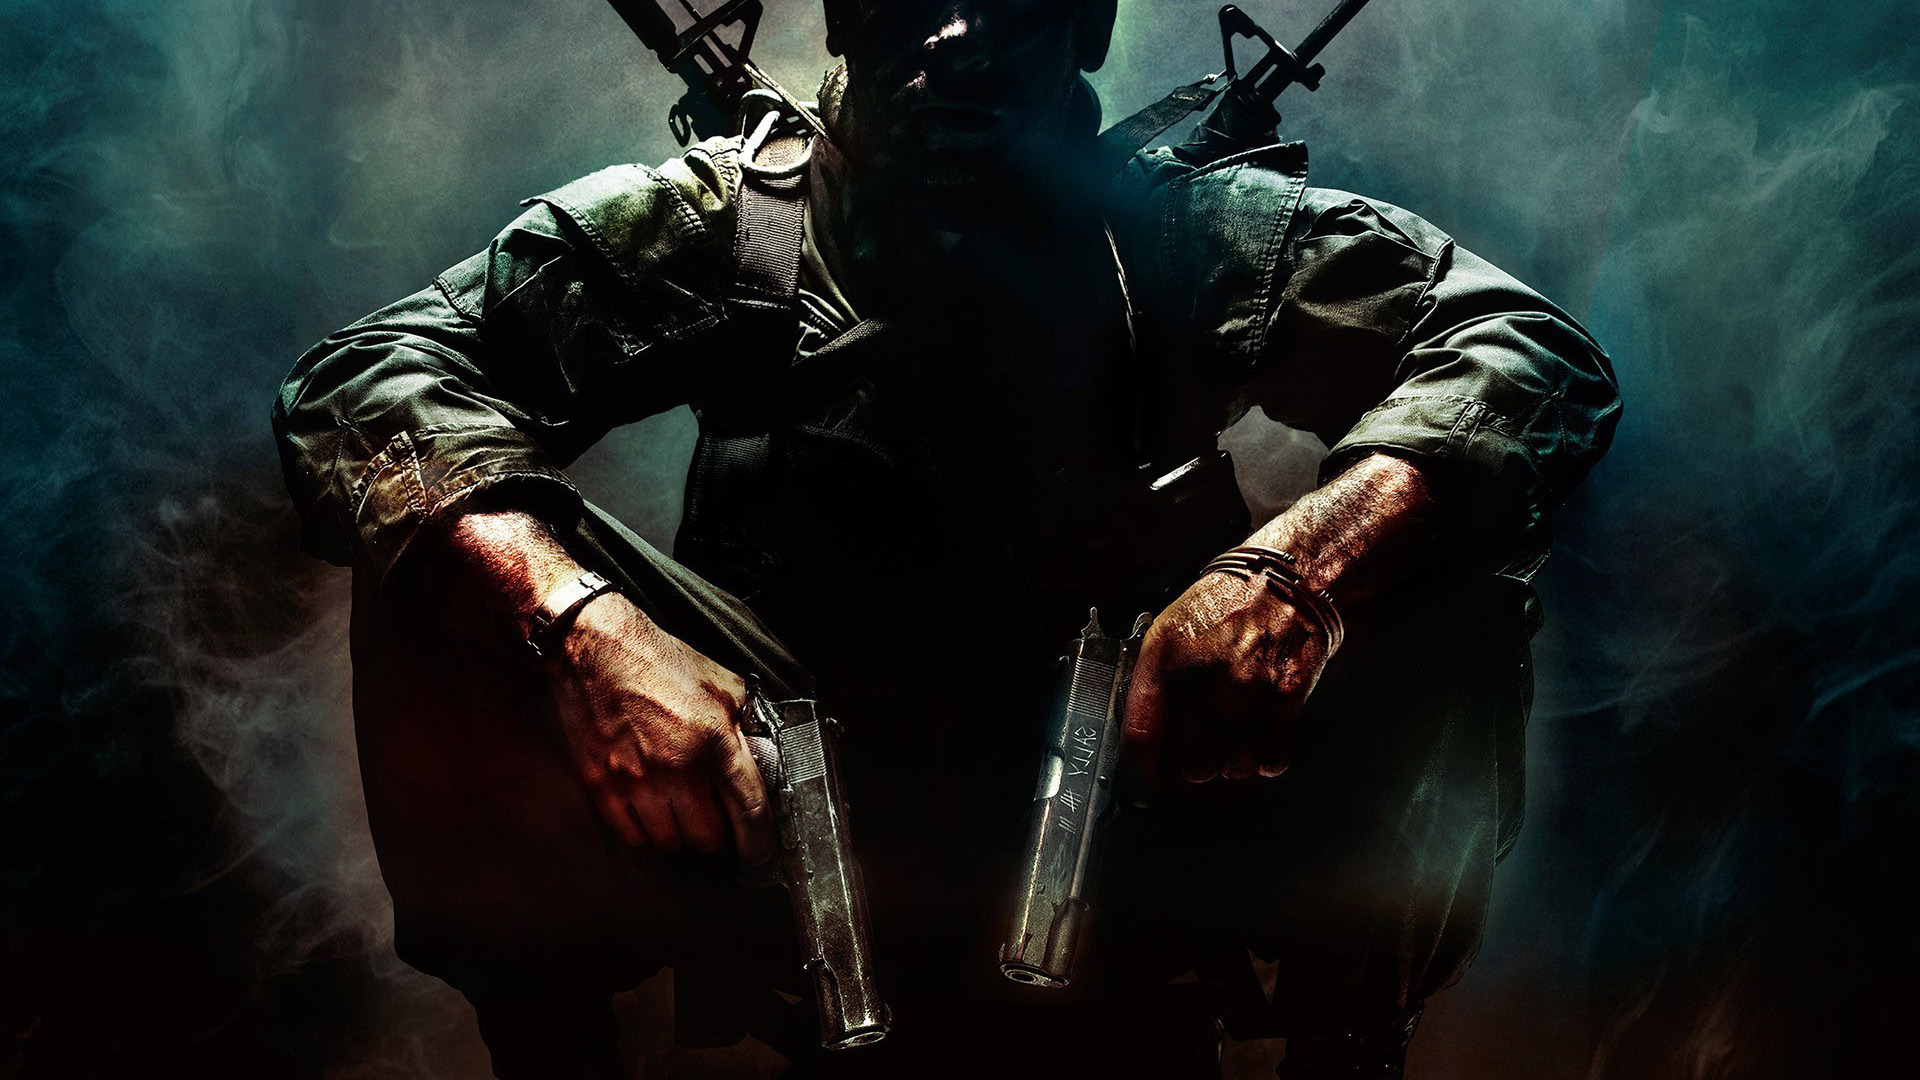 Sounds Like Call Of Duty Is Rebooting Black Ops This Year